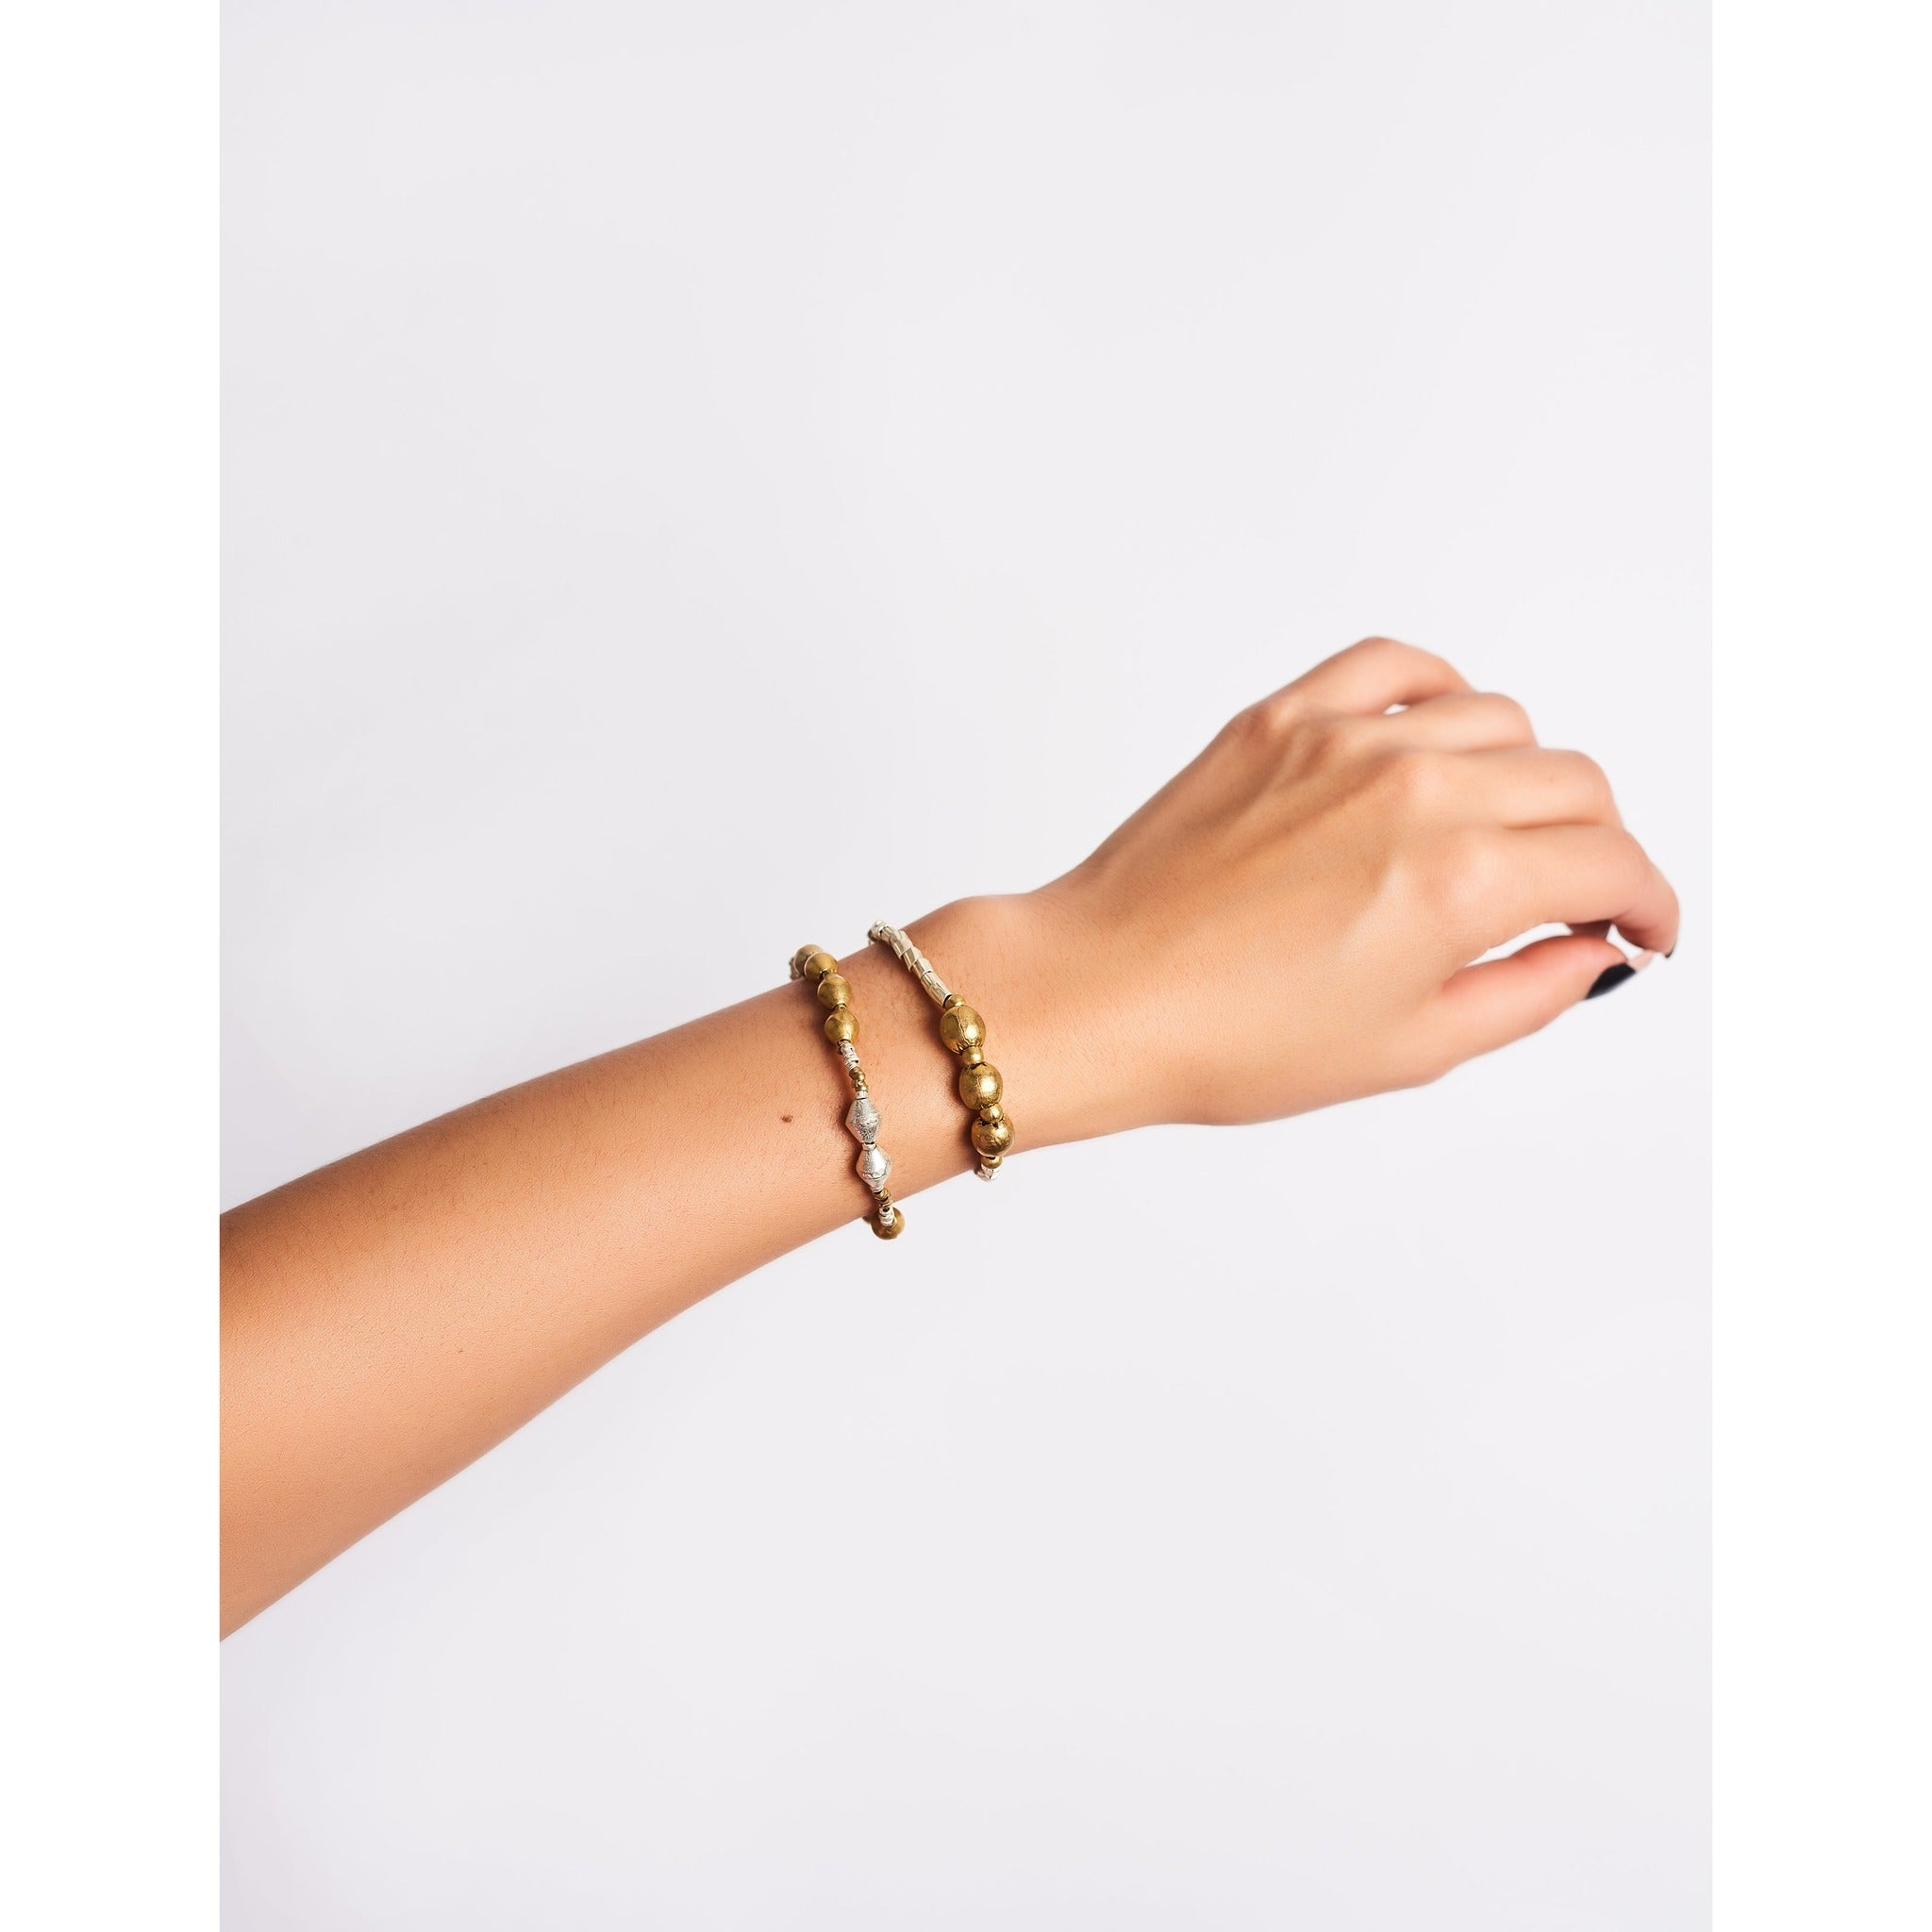 Luna Bracelet - Shop Collective Goods